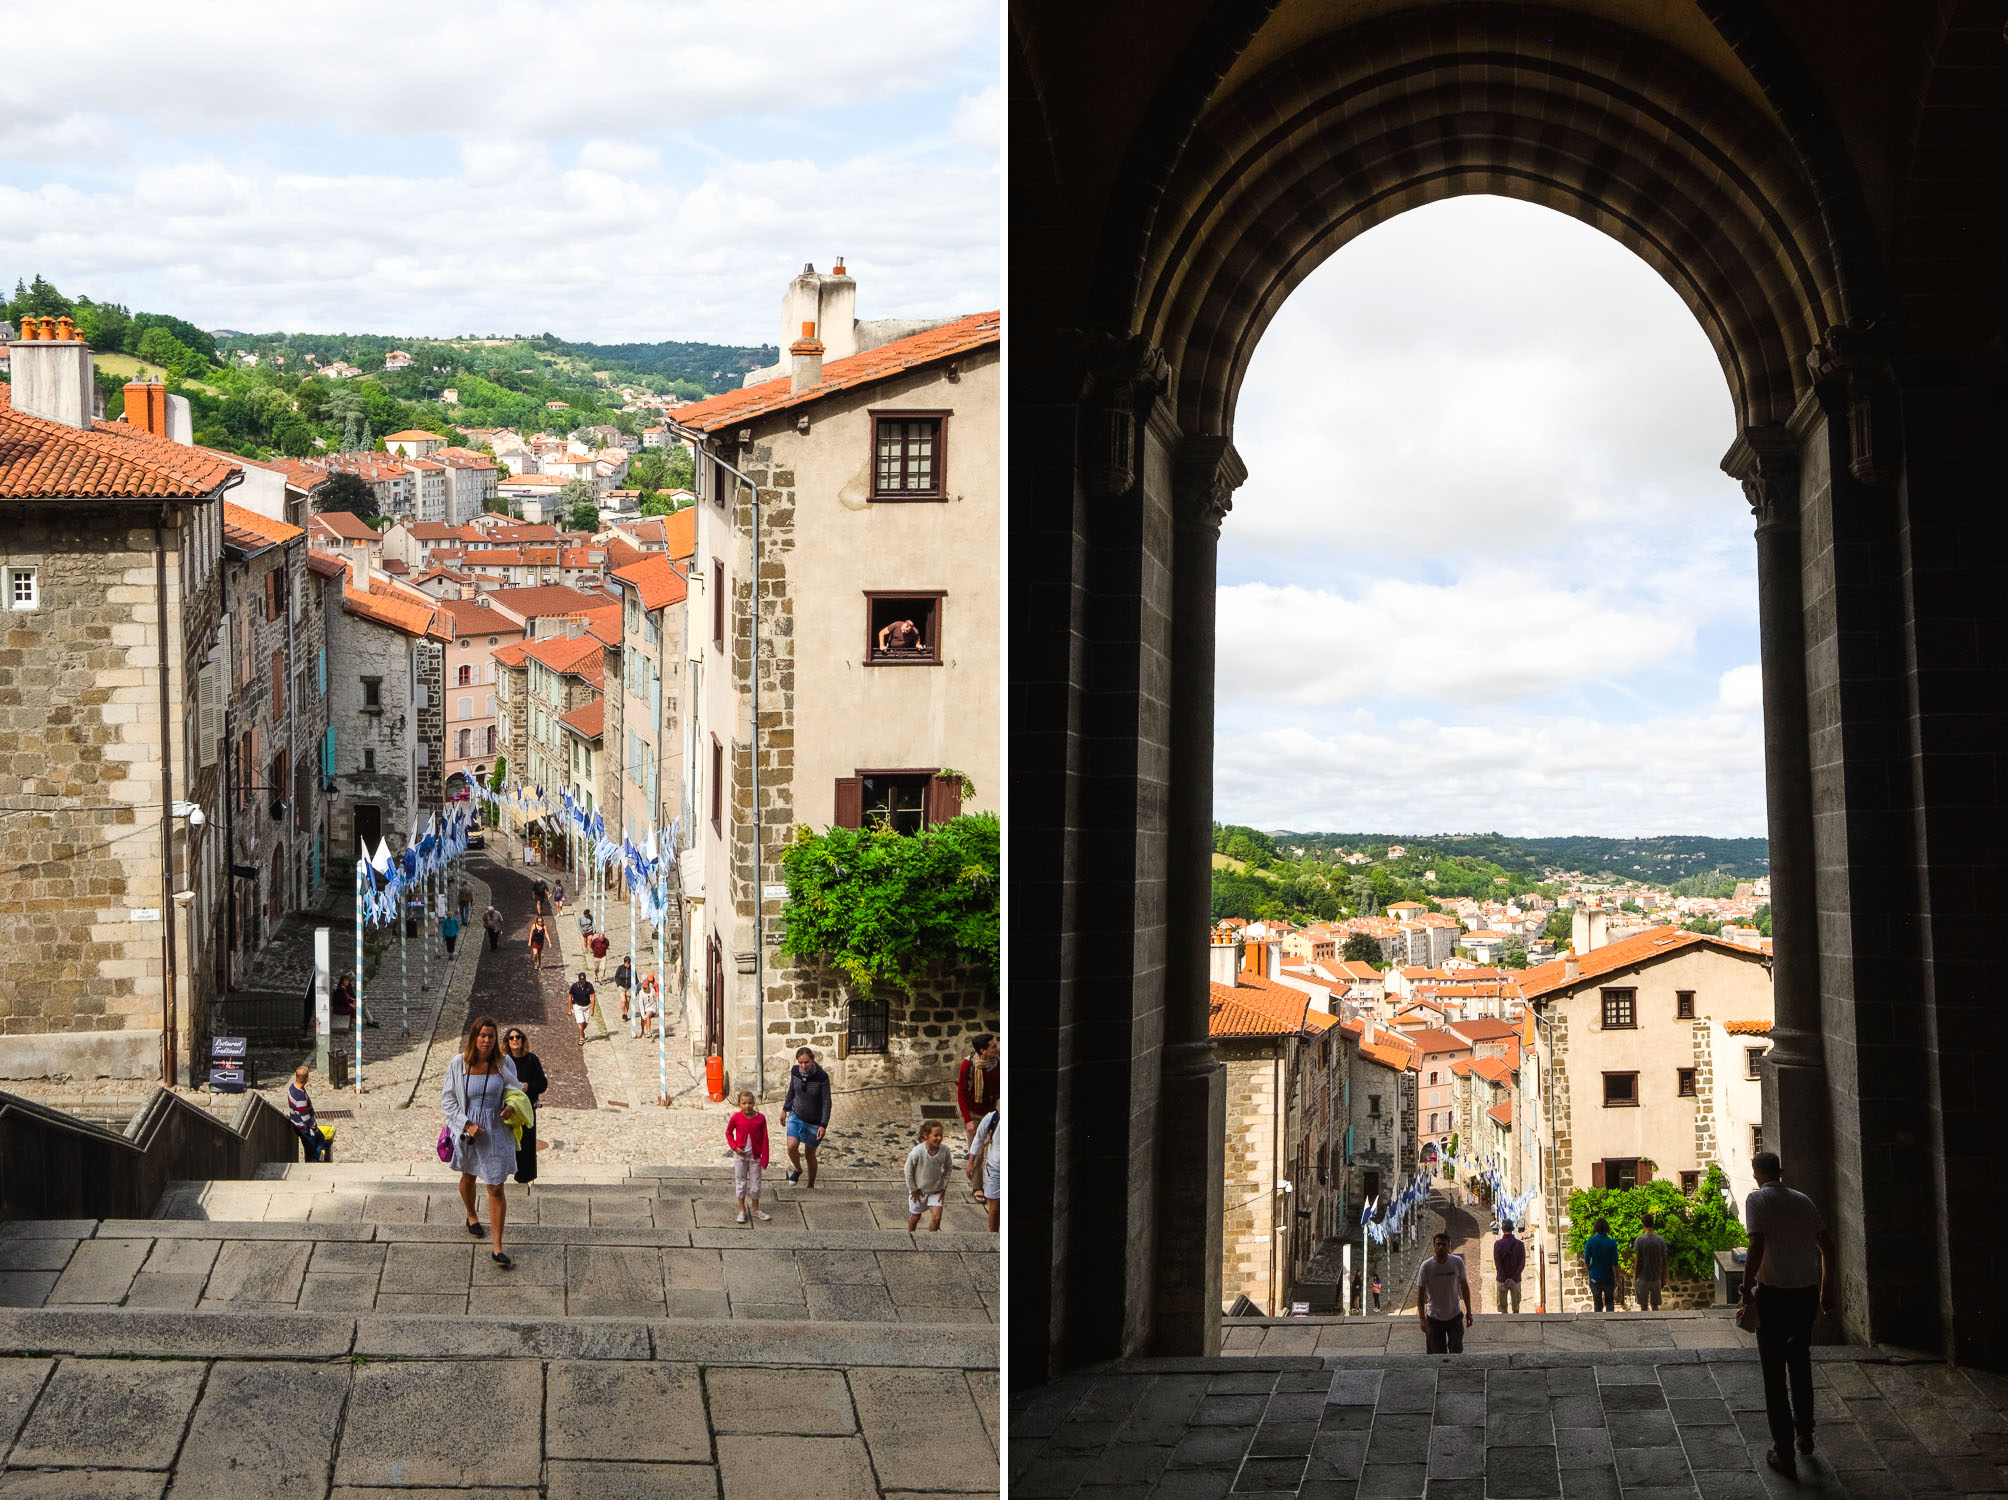 Le Puy en Velay is a picturesque town in the Auvergne region of France. The Cathedral of Our Lady of the Annunciation, a stunning 12th century Romanesque church